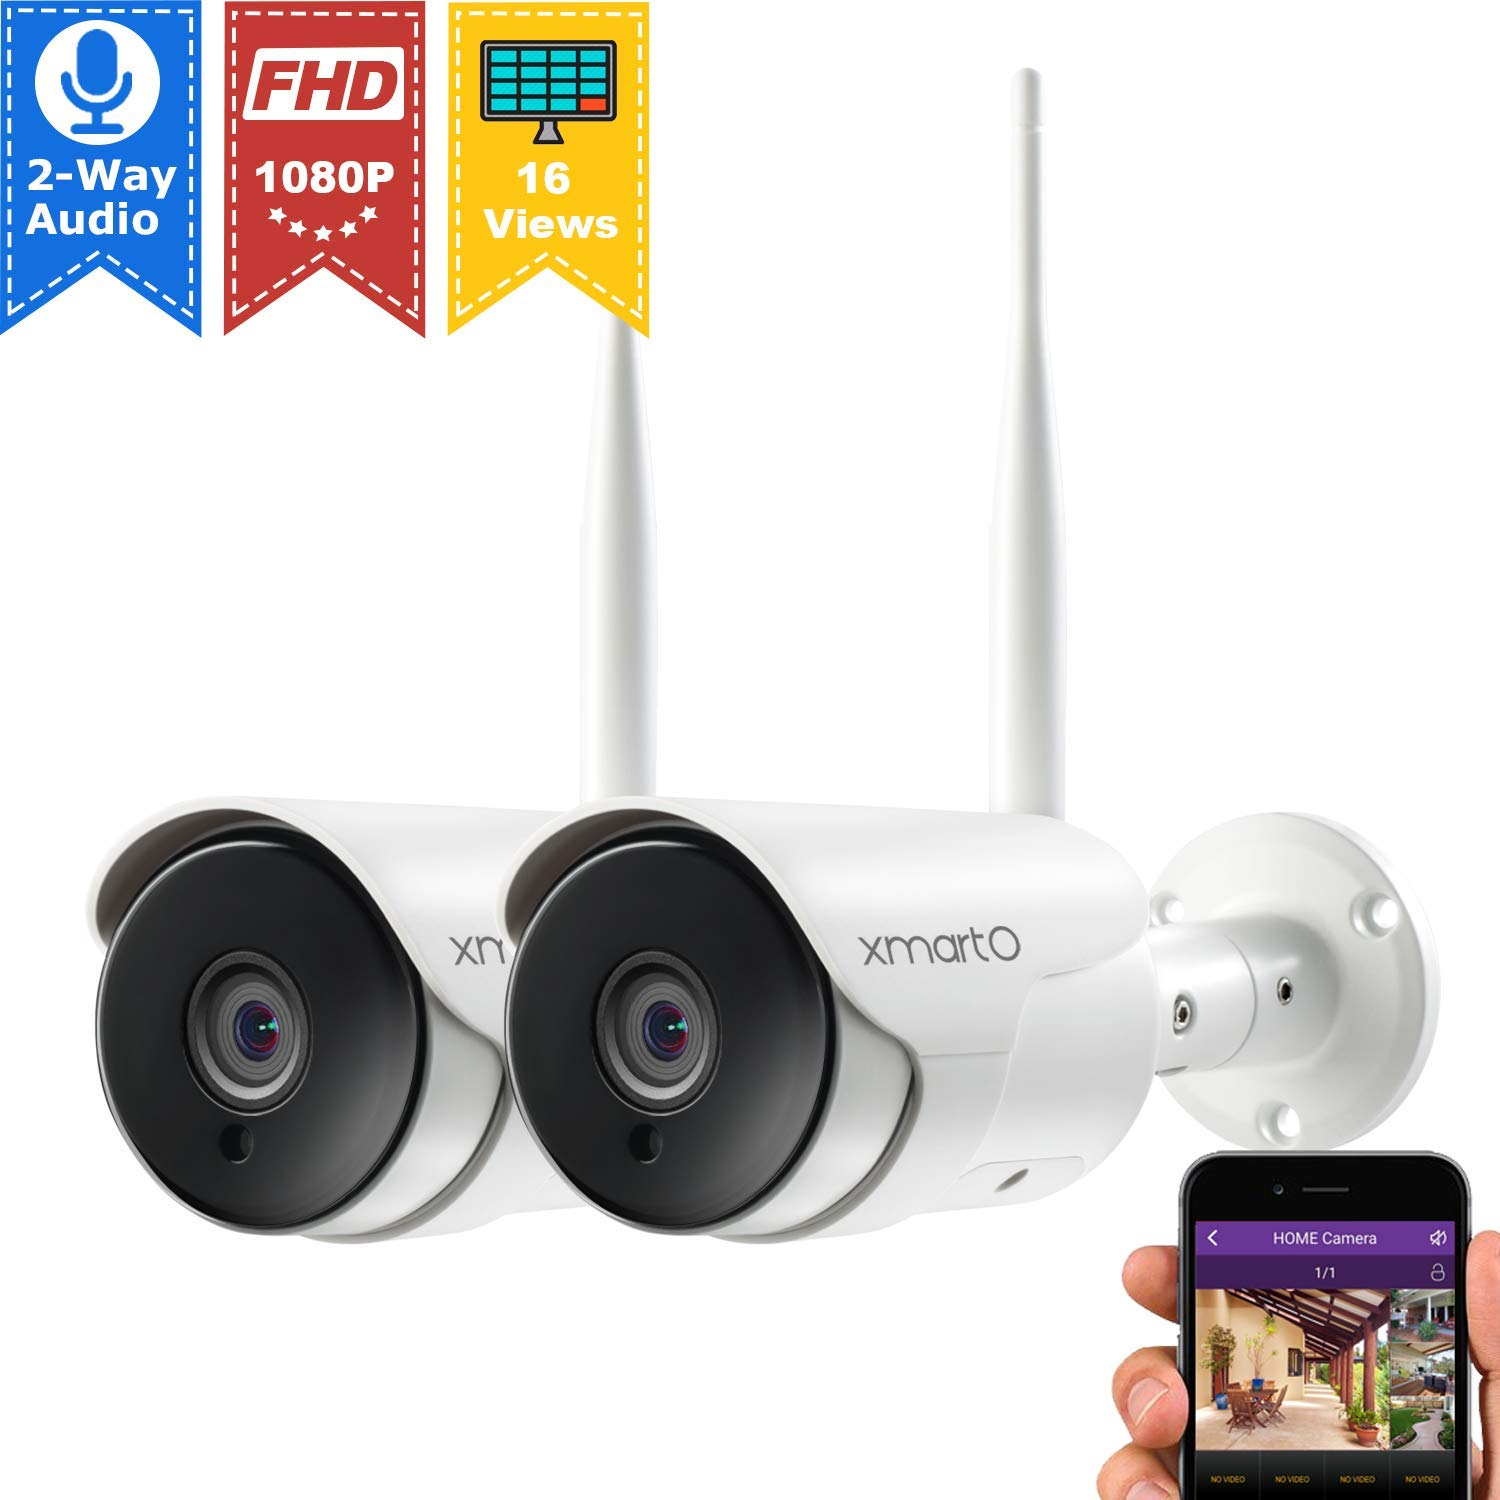 xmartO XMARTO 1080p HD Wireless Security Camera, Two-Way Audio, WiFi IP Home Surveillance Bullet Camera with Night Vision, Remote Access, IP65 Weather-Resistant, Motion Detection Alert 2-Pack